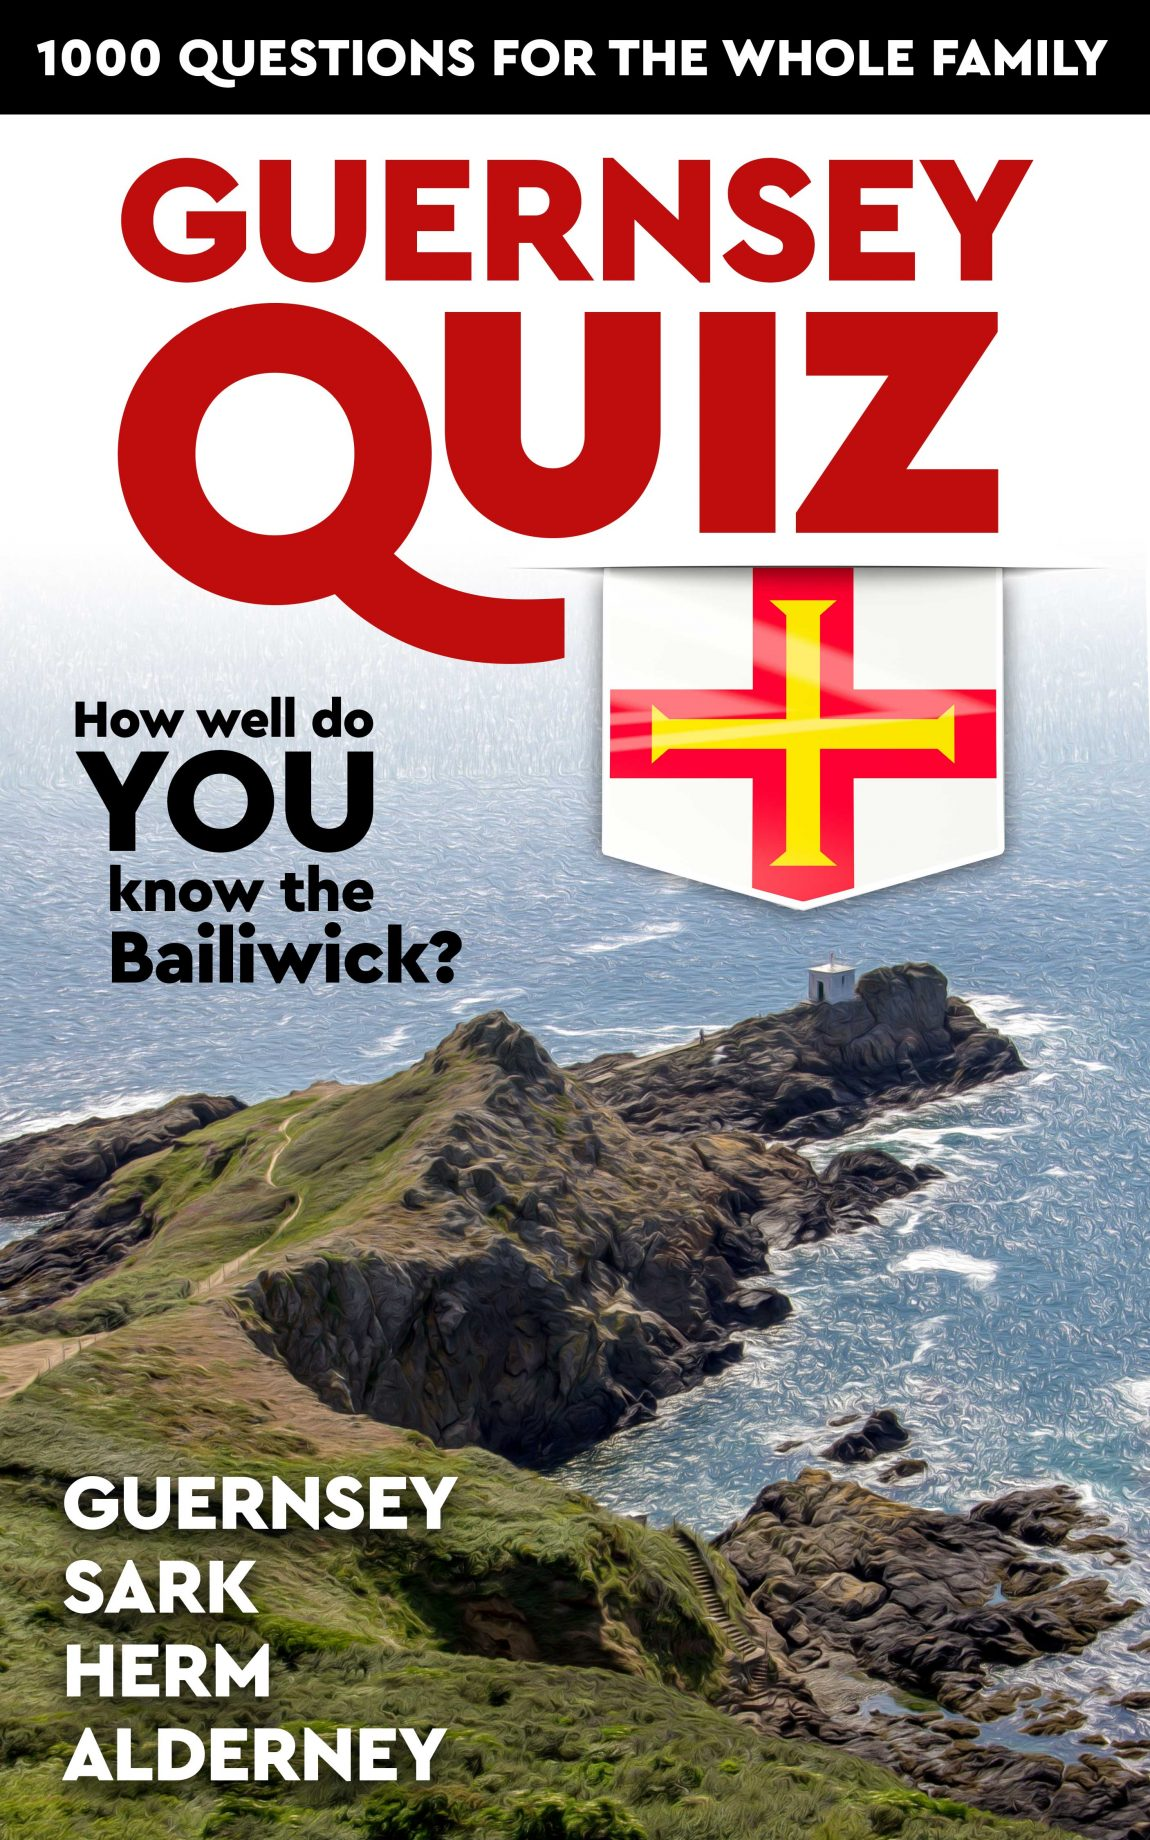 guernsey-quiz-cover-big.jpg